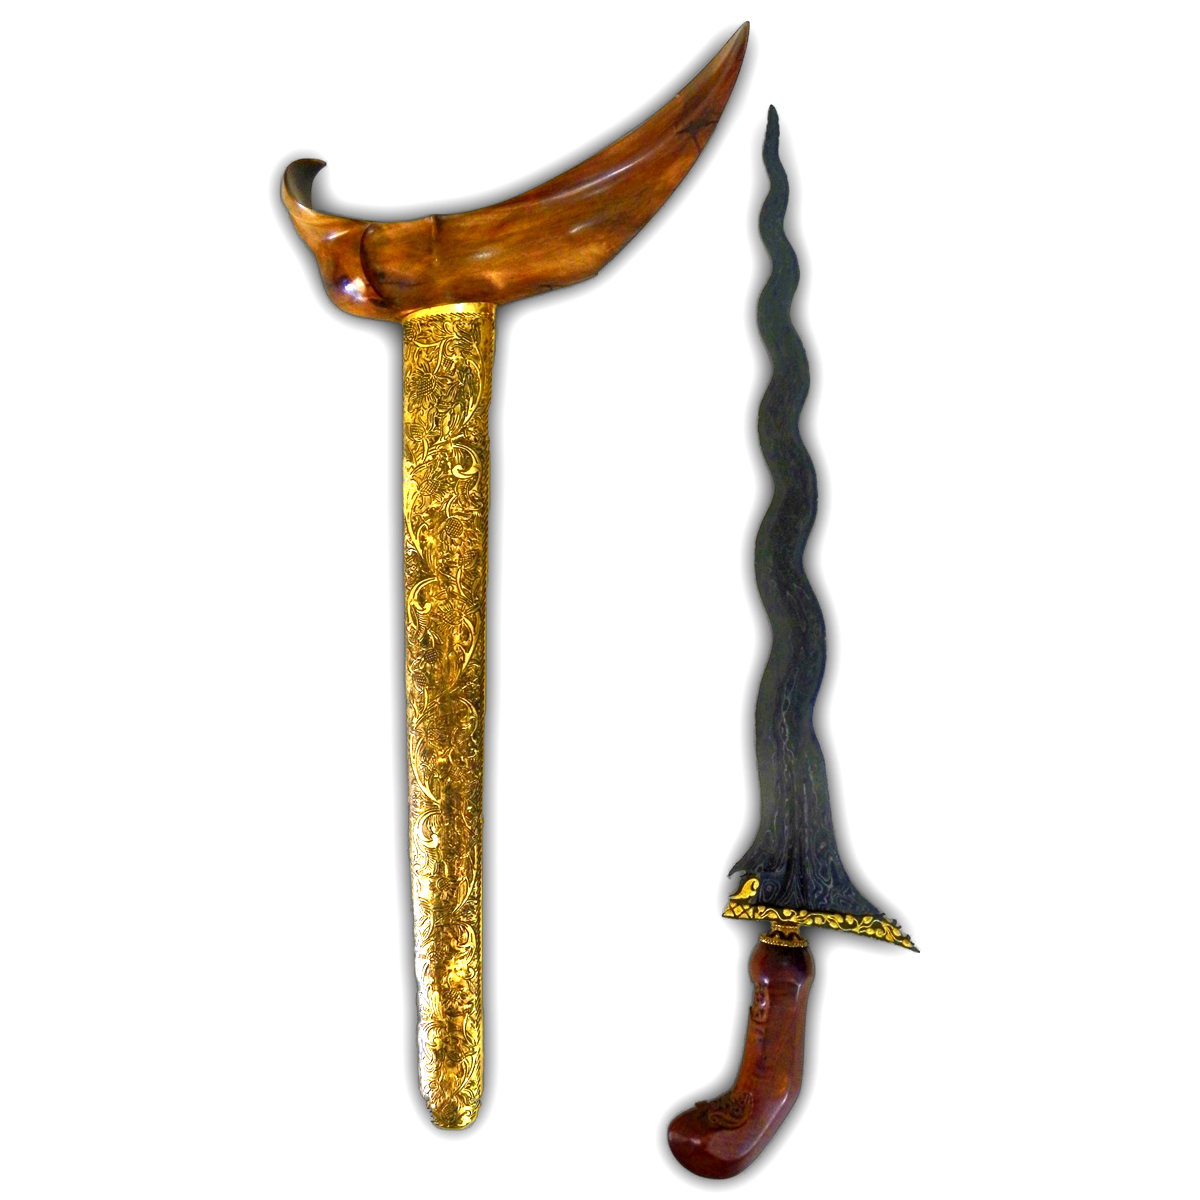 Keris Sengkelat Mataram Sultan Agung‏ with Gold-plated Kinatah, Ancient Brass Sheath, and Teak-wooden Hilt